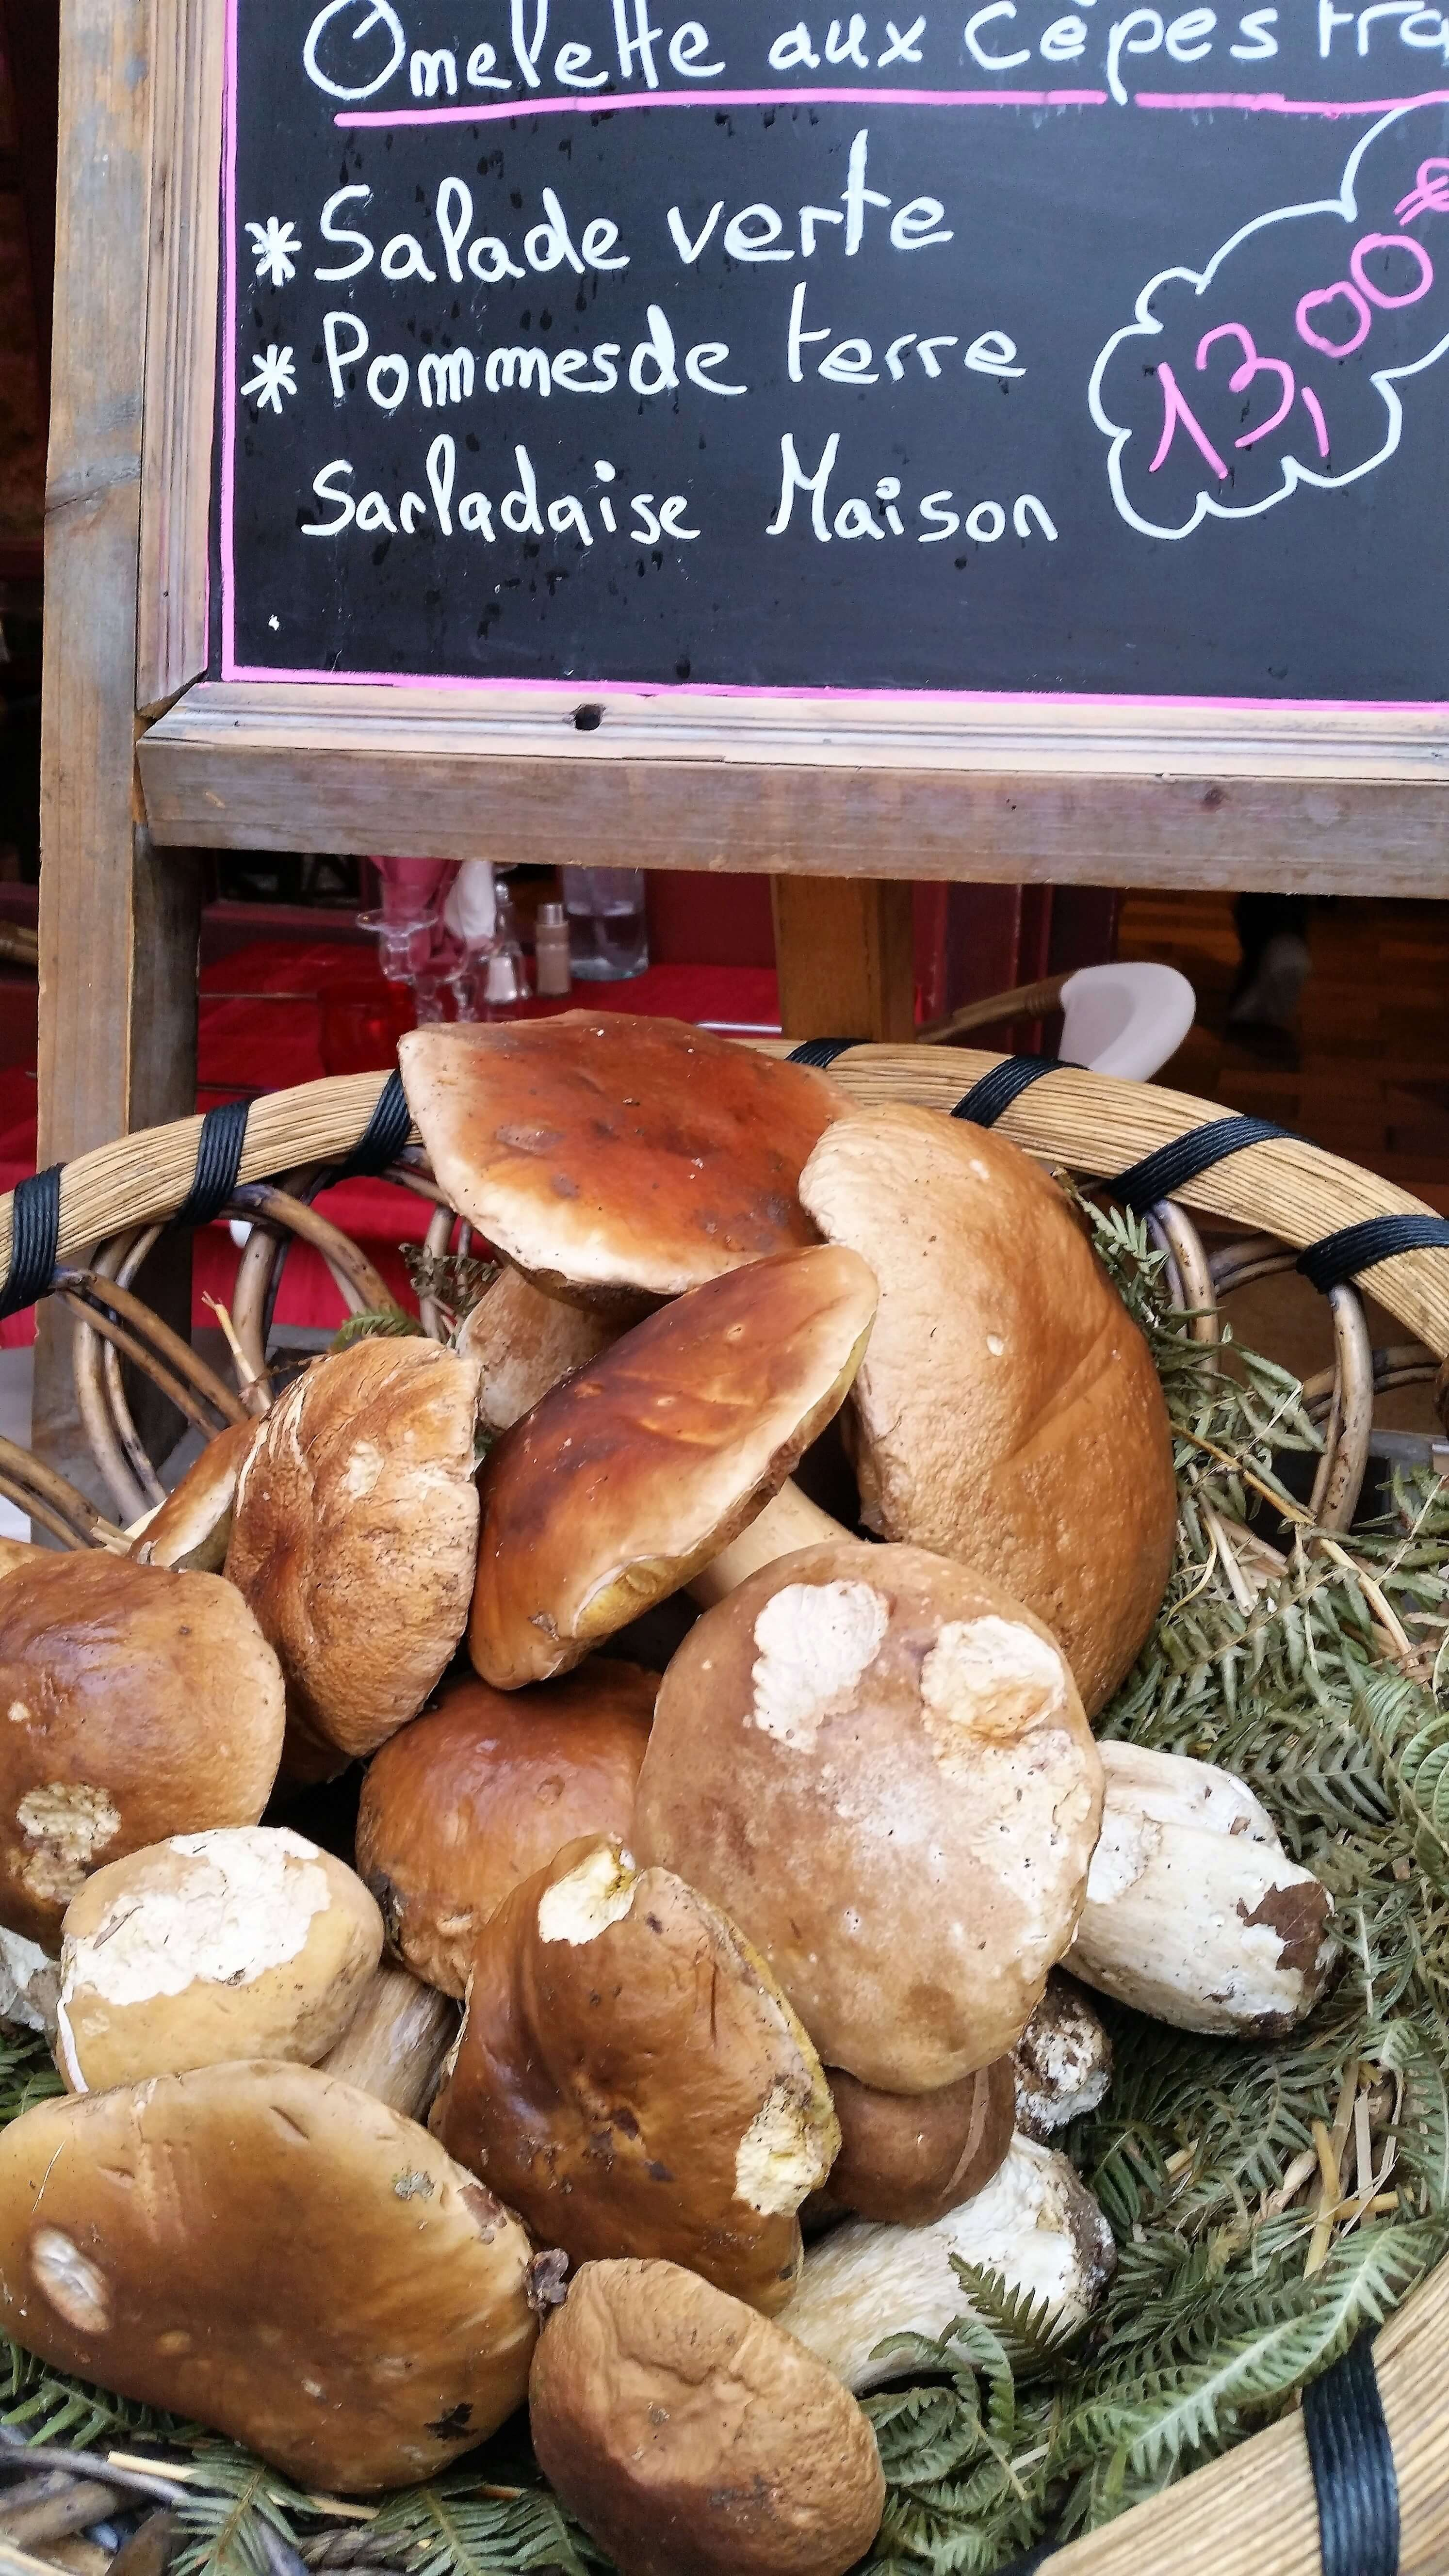 Recipes for cepes